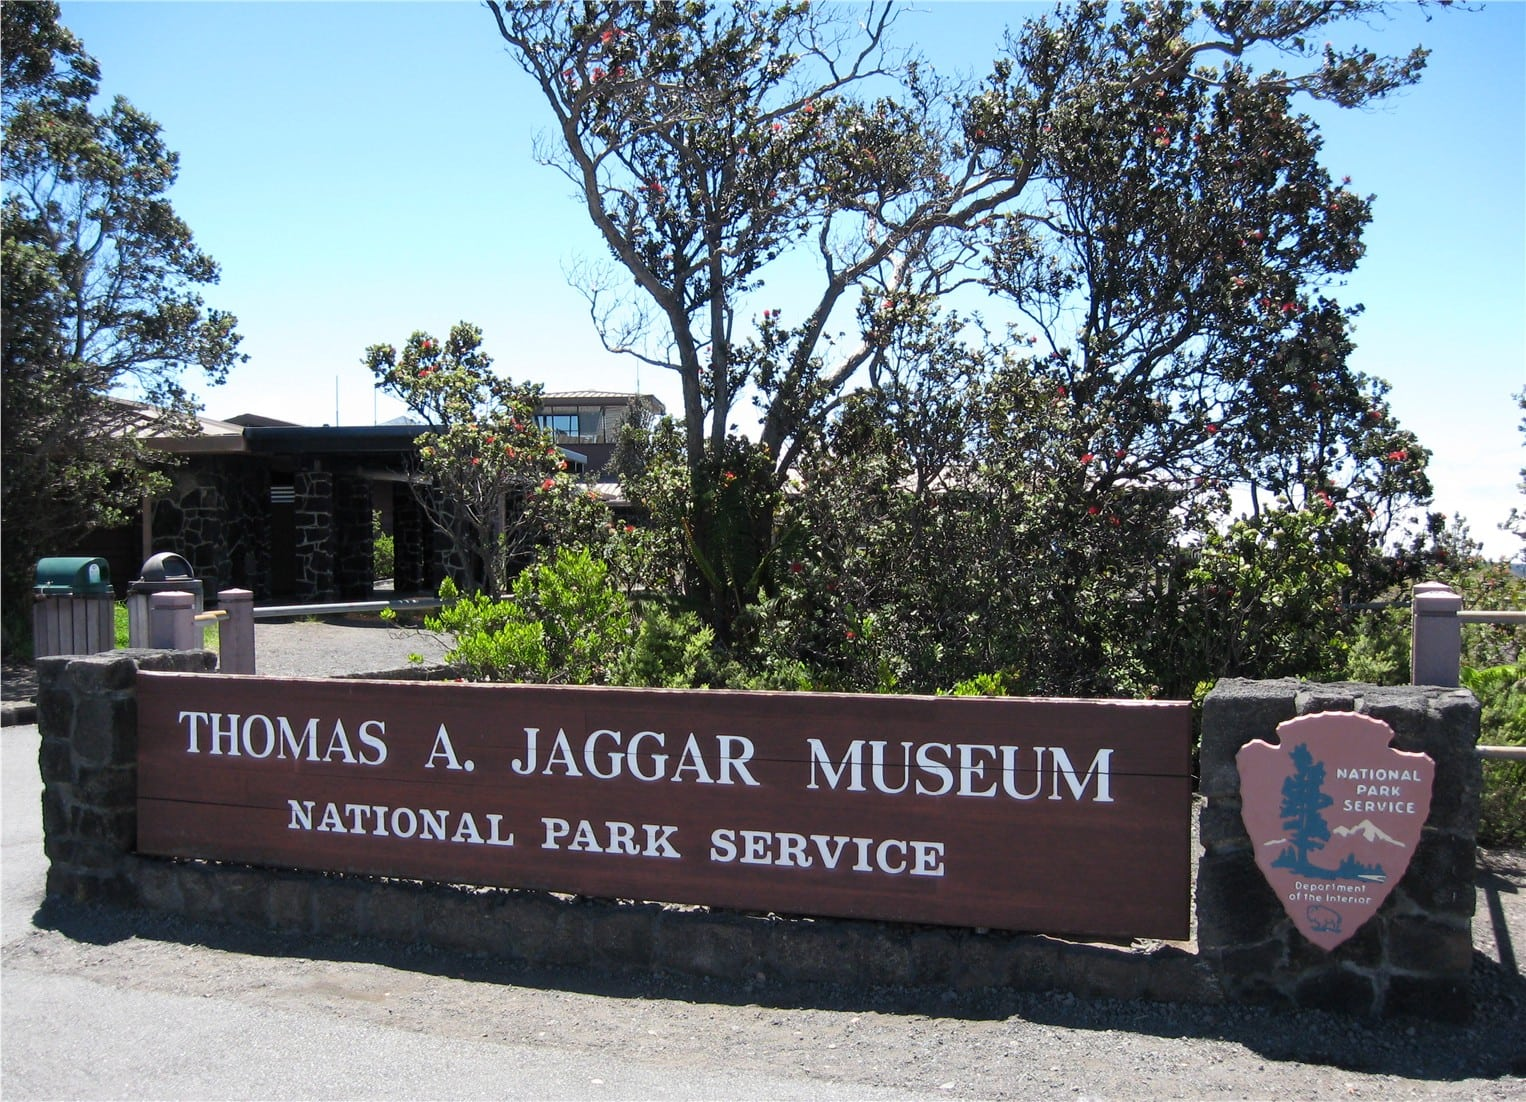 The Jaggar Museum at the Kilauea summit is closed indefinitely